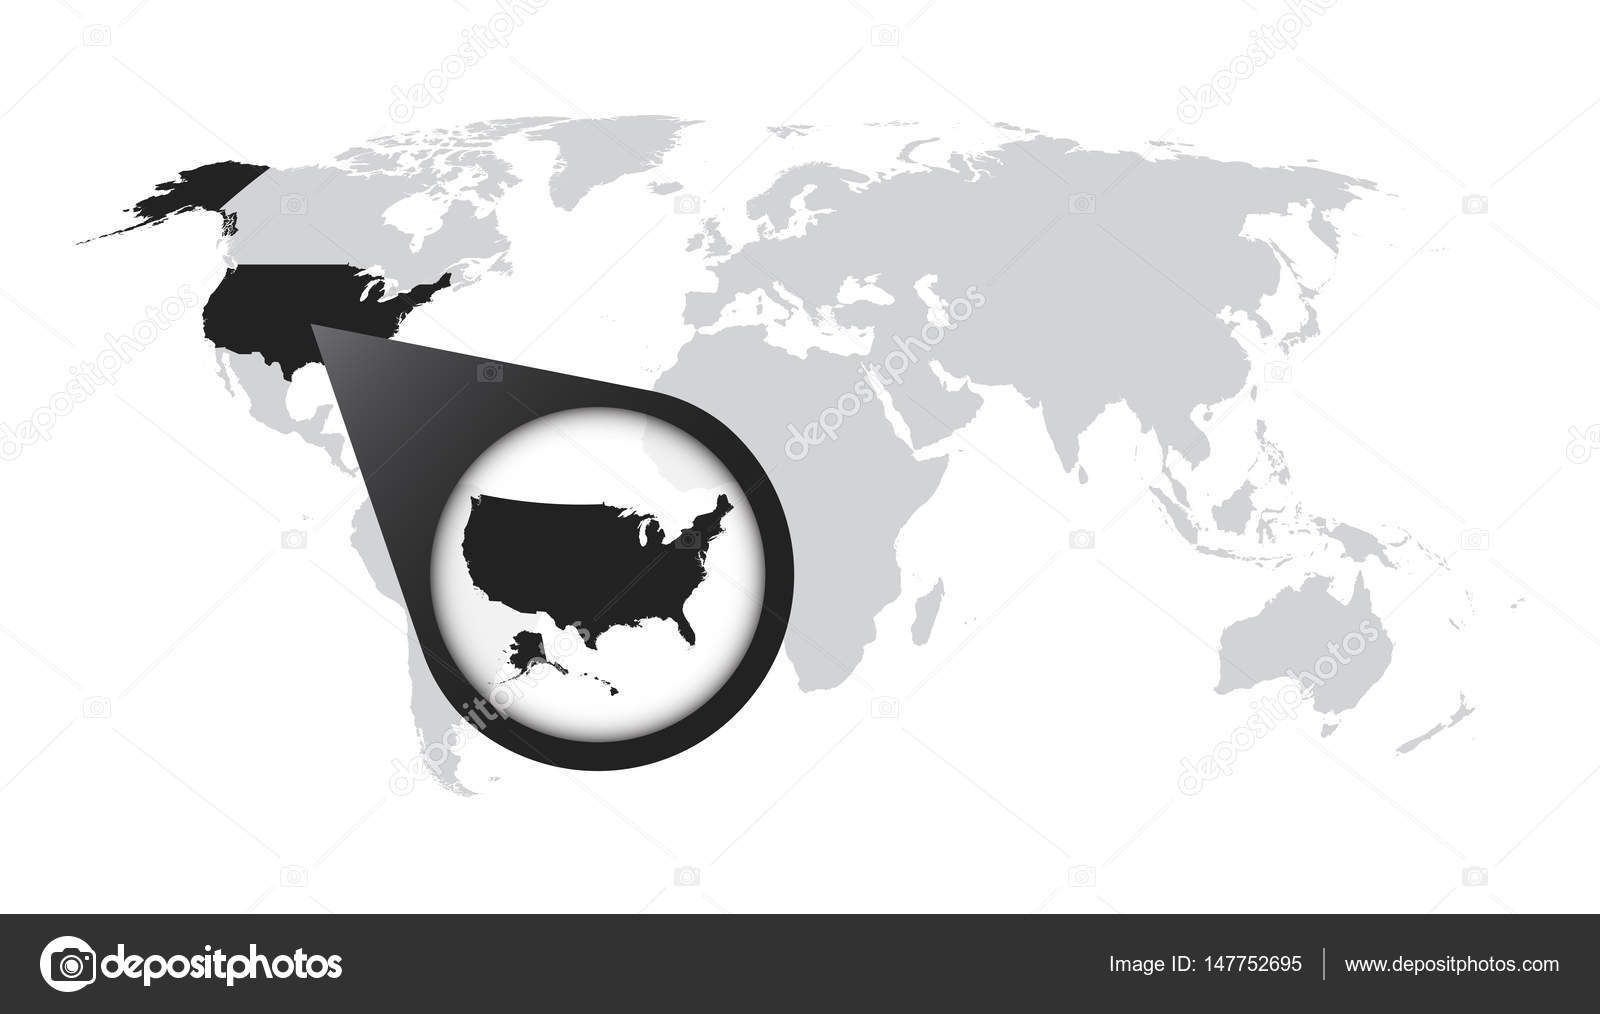 World map with zoom on USA. America map in loupe. Vector ... on map ltd, map measure tool, map snap, map reporter, map widget, map land of the lost, map scaling, map icon library, map of spain la liga teams, map select, map slide, map of europe with names, map watermark, map measure distance, map shelby, map hancock, map layers, map screensaver, map information,